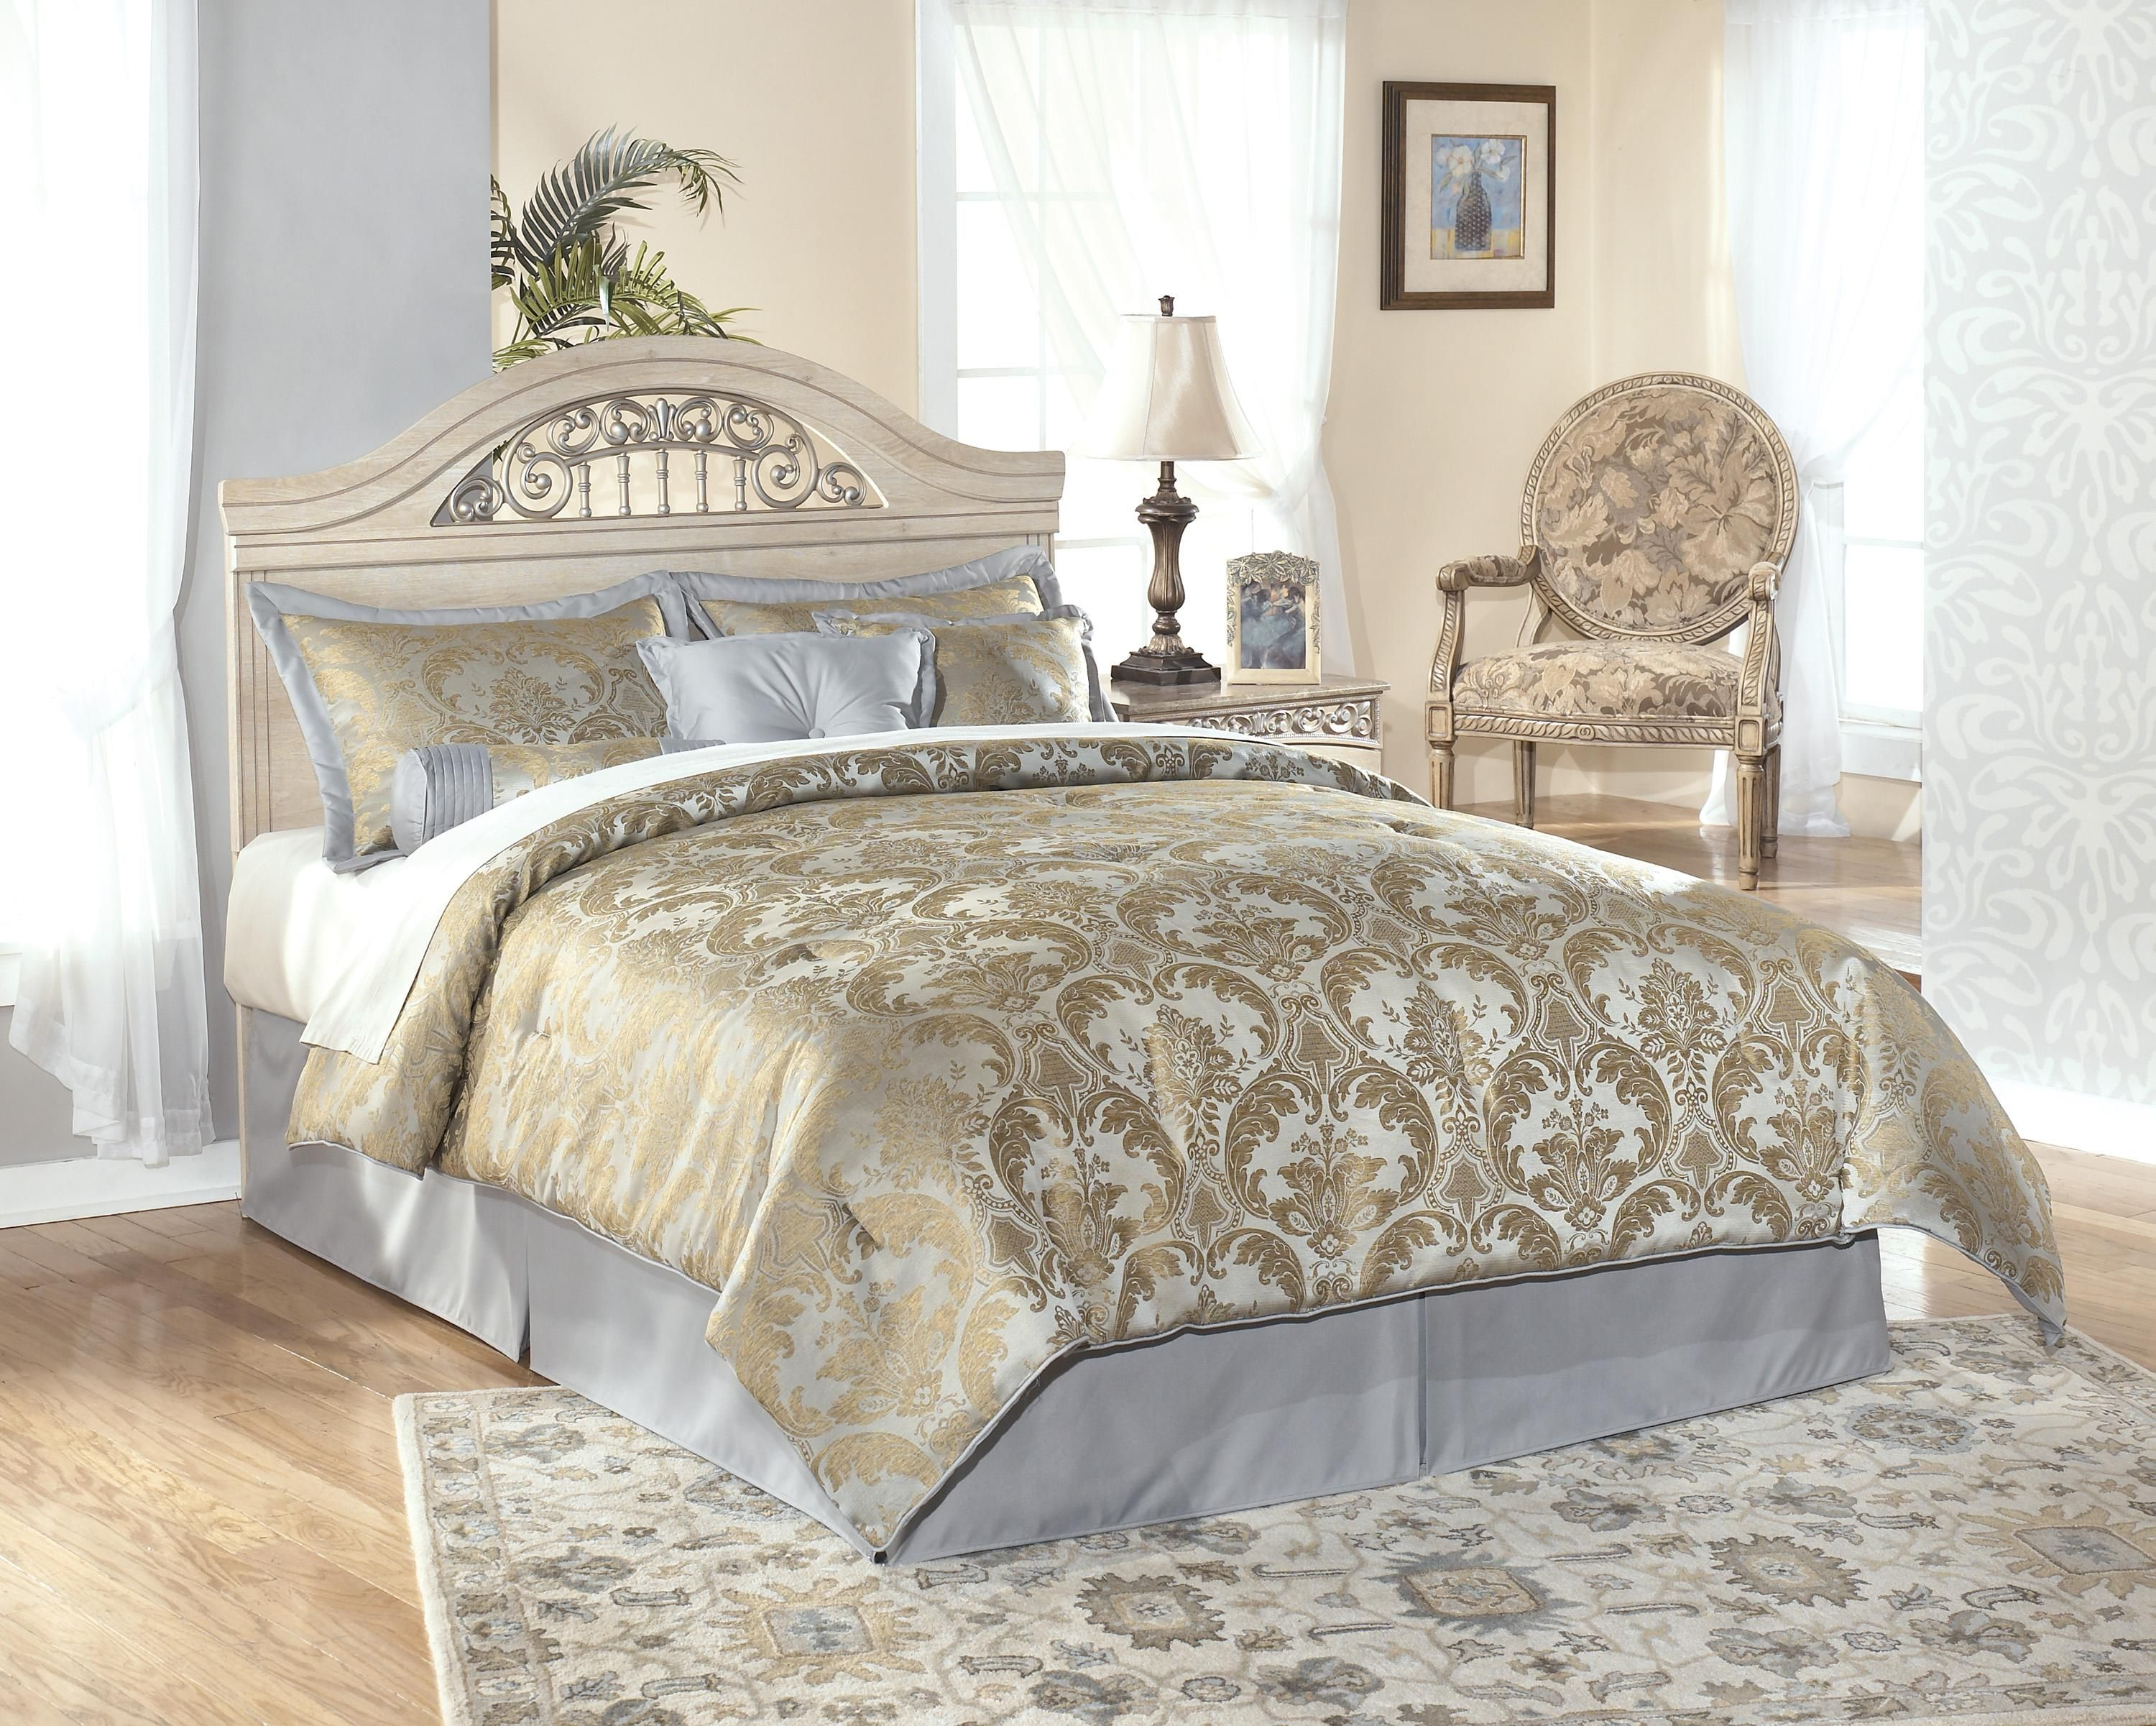 Catalina B196 Full Queen Panel Headboard by Signature Design by Ashley  Furniture for  149Catalina Full Queen Size Headboard with Ornate Metal Insert by  . Ornate Bedroom Furniture. Home Design Ideas